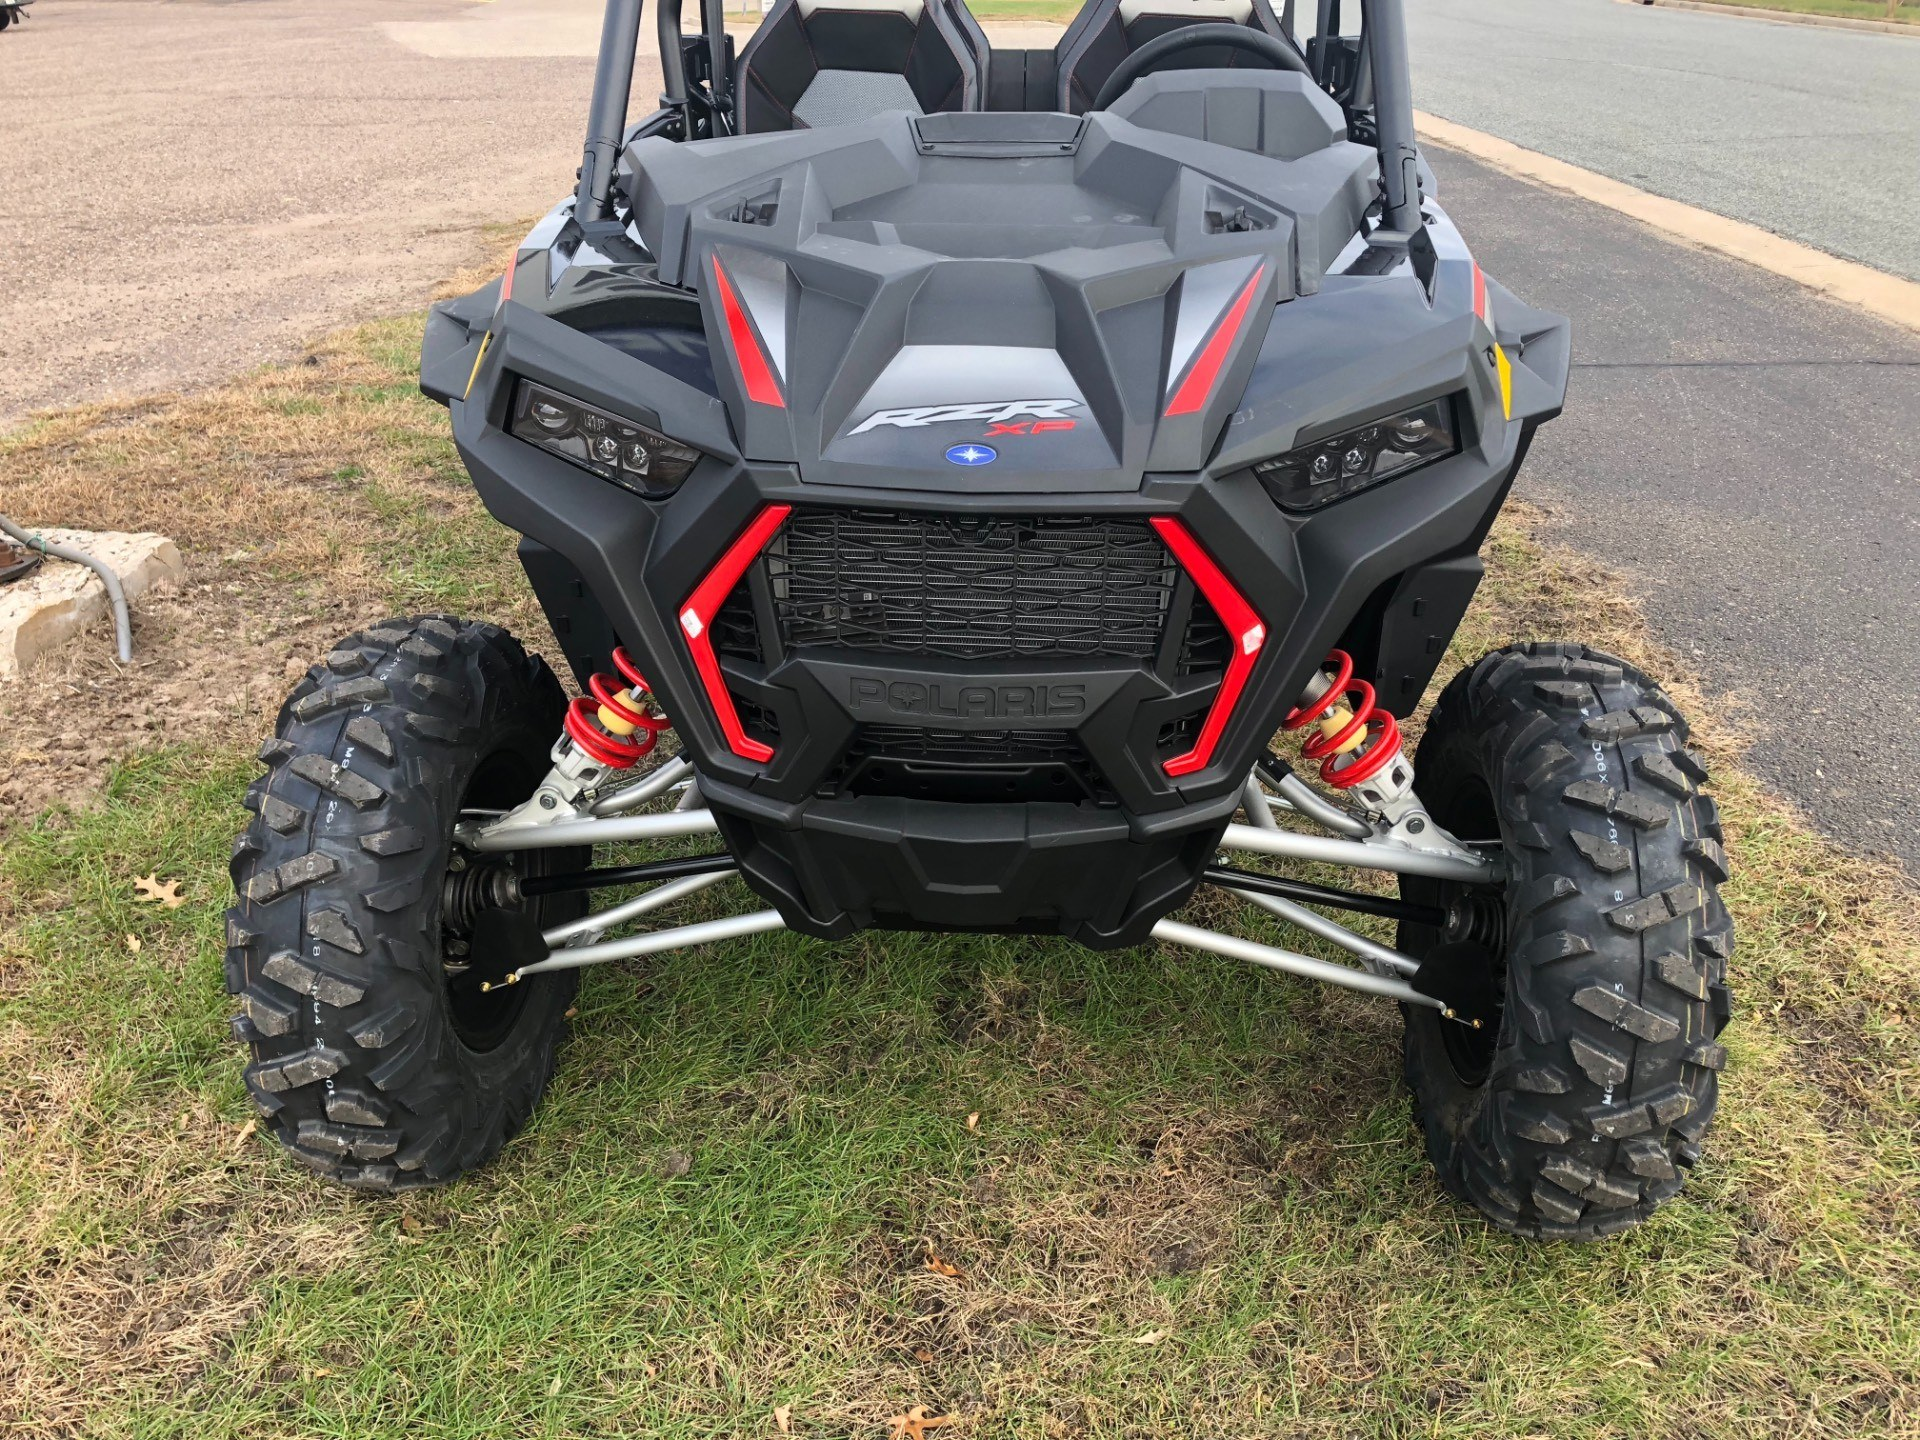 2019 Polaris RZR XP 4 1000 EPS in Altoona, Wisconsin - Photo 2